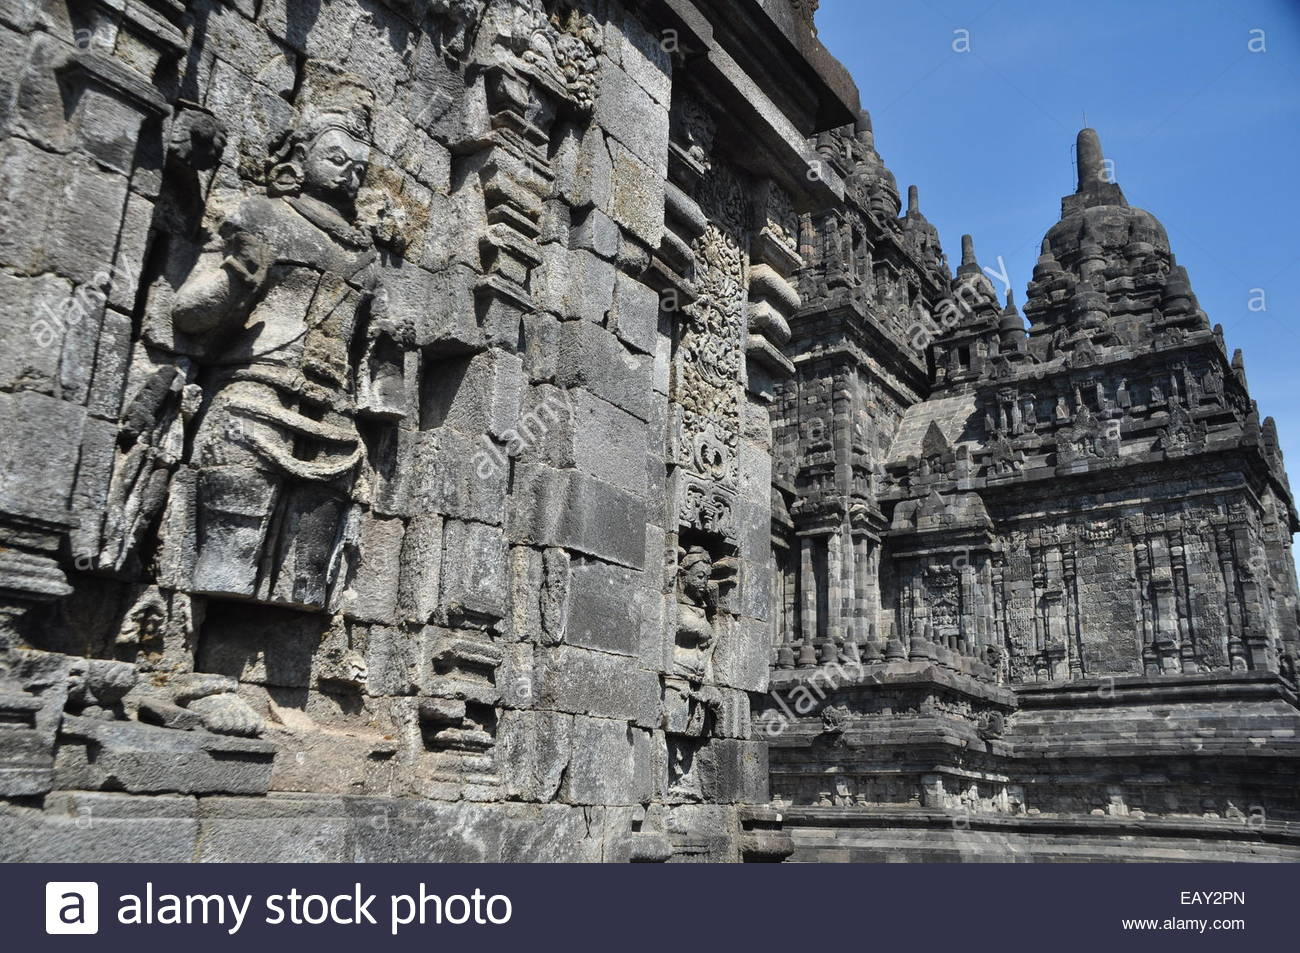 Candi Sewu Relief Stock Photo 75582941 Alamy Kab Klaten